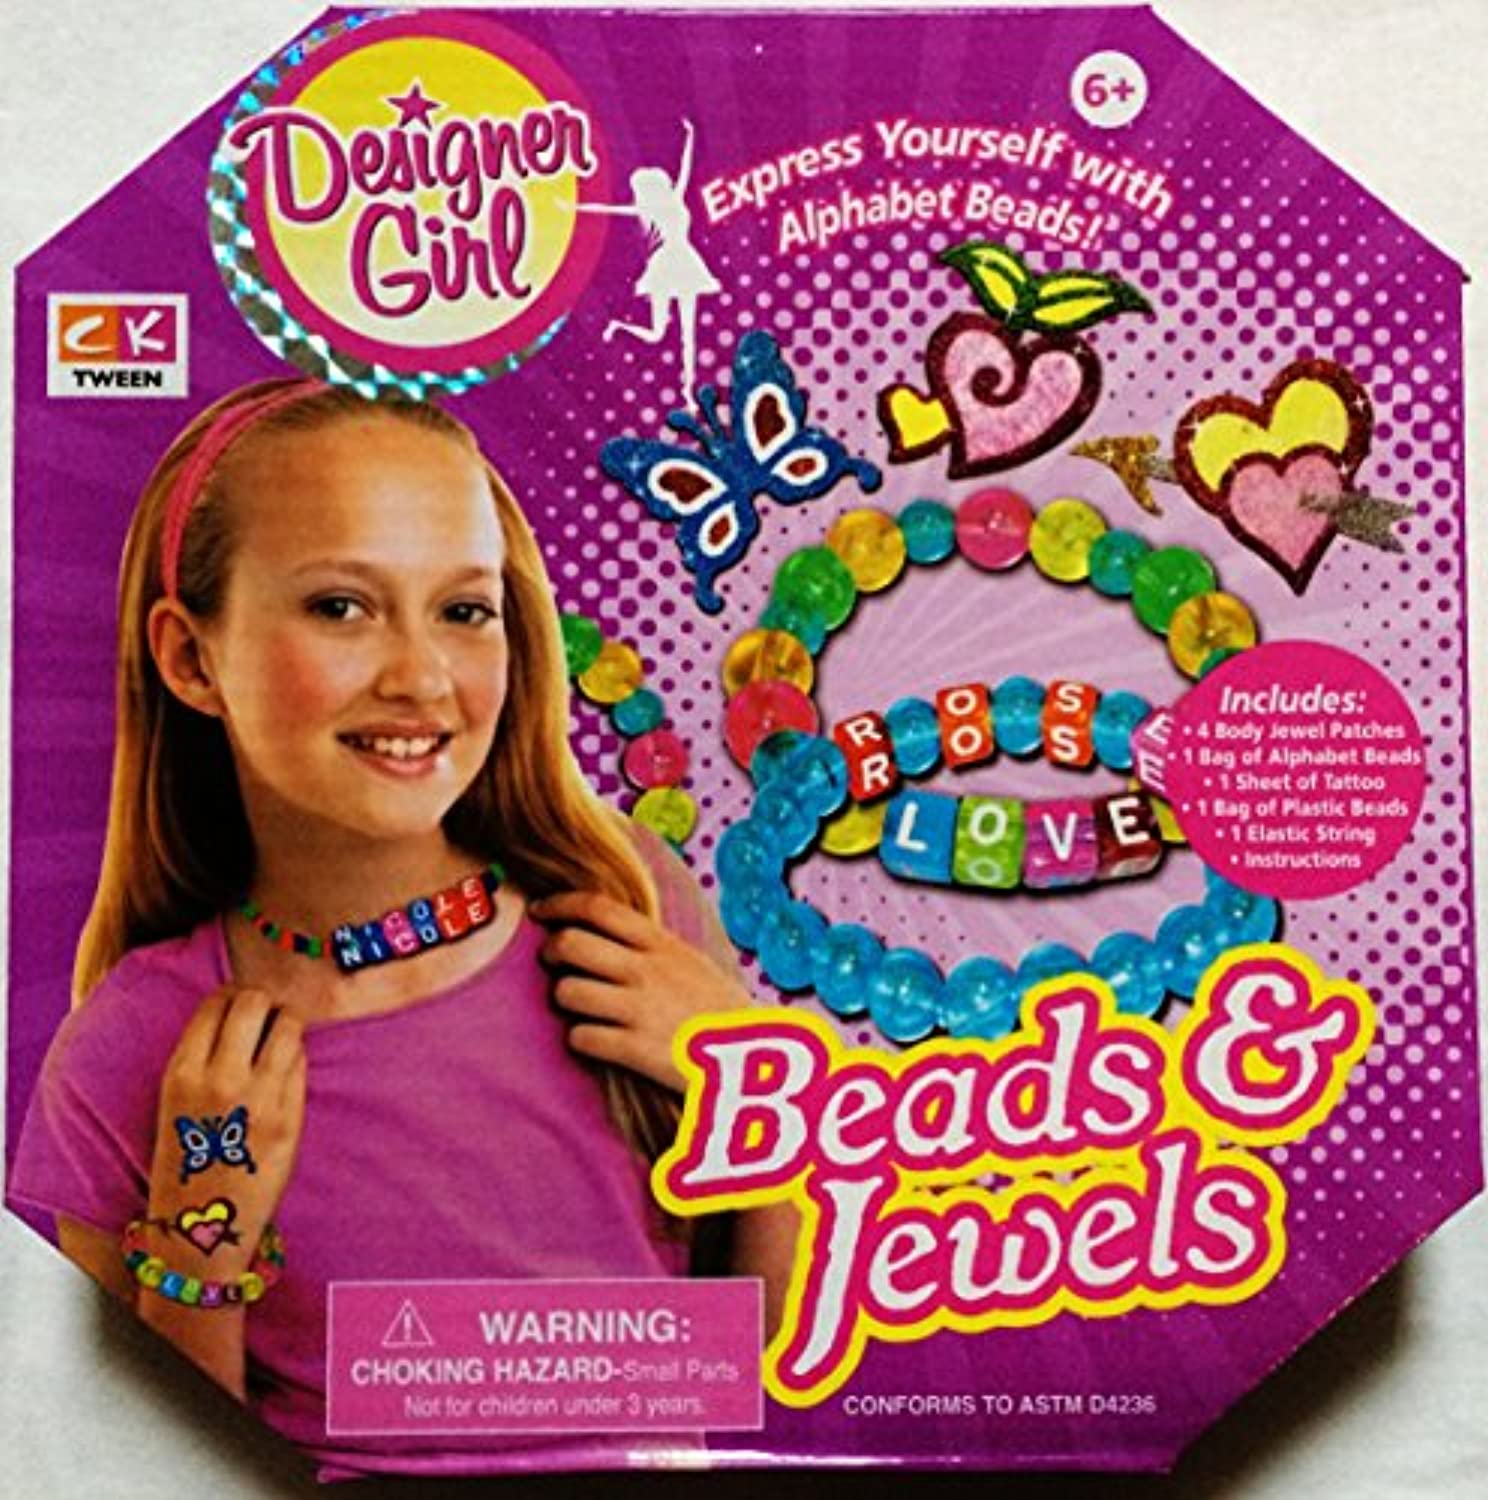 Designer Girl Beads & Jewels